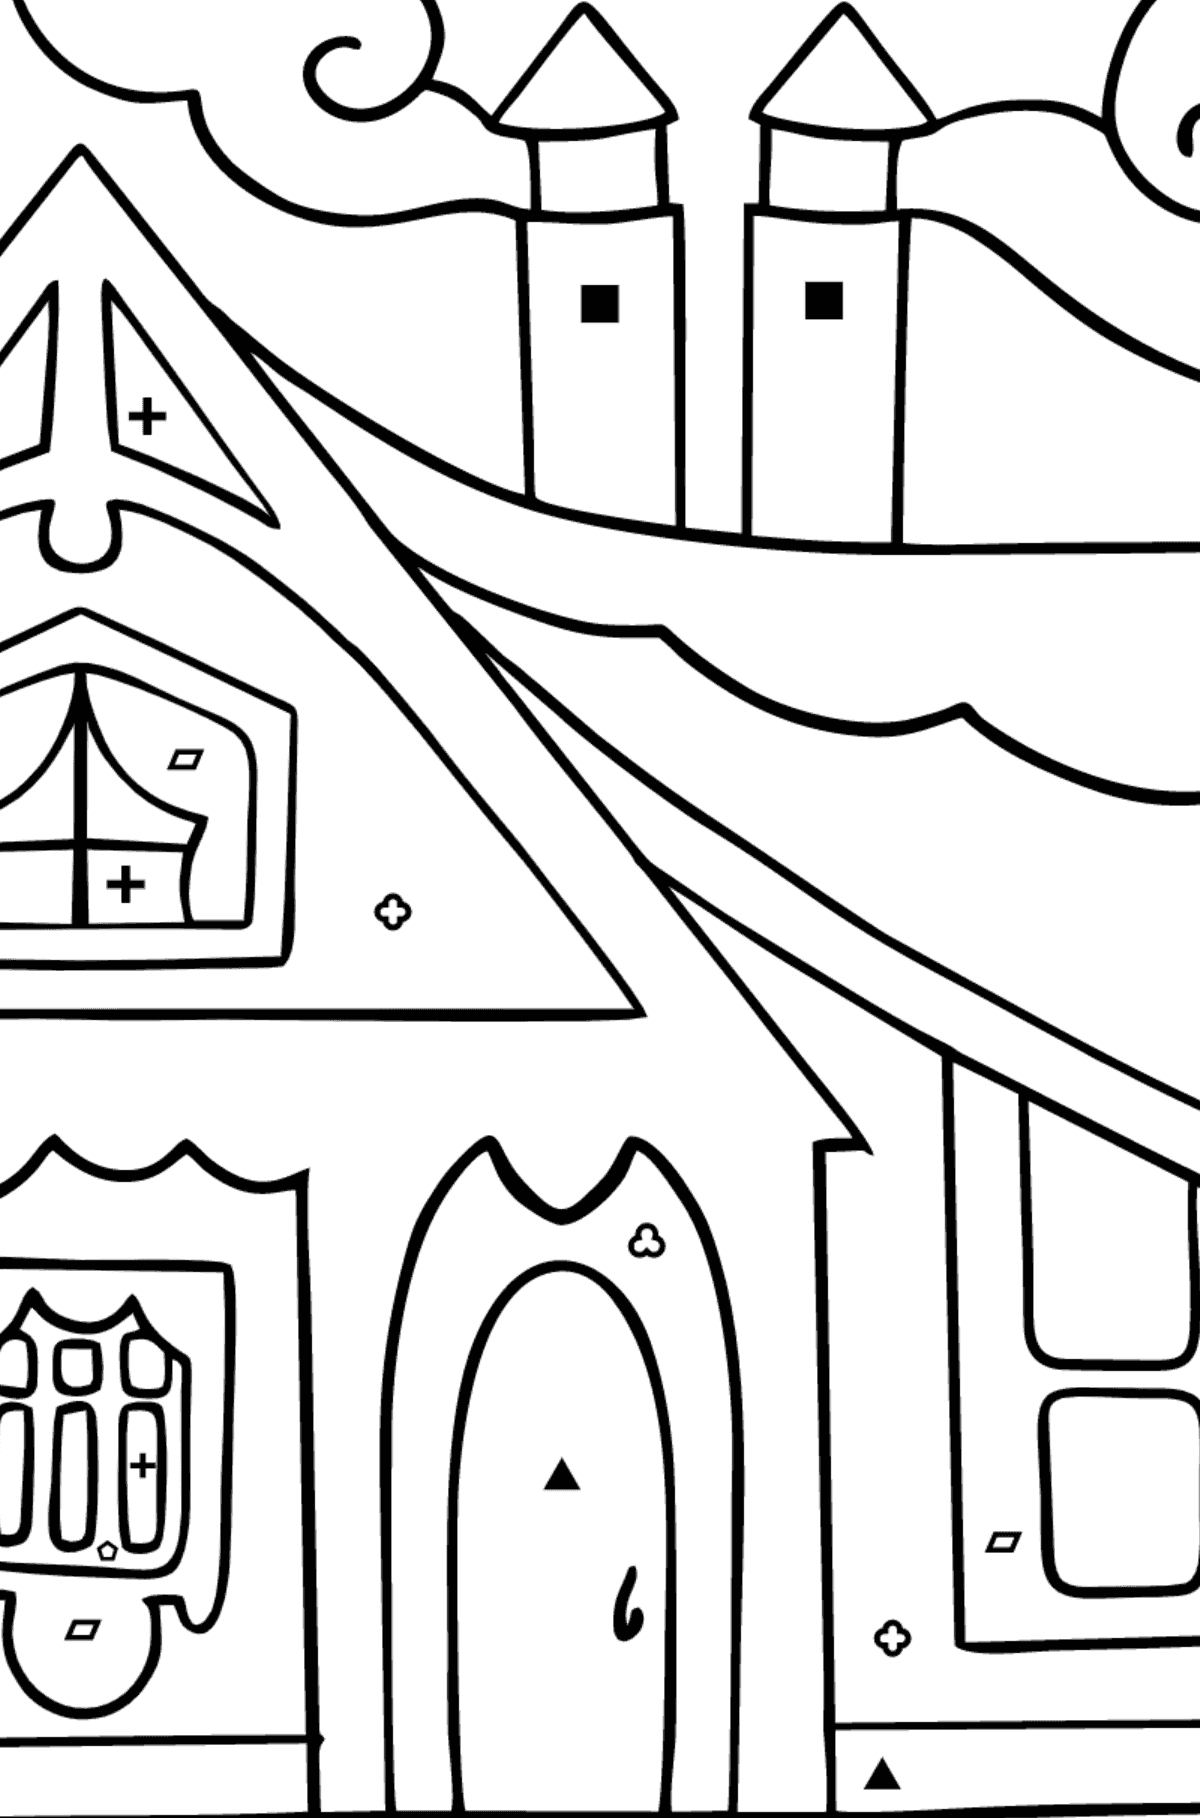 Coloring Page - A Tiny House - Coloring by Symbols and Geometric Shapes for Children